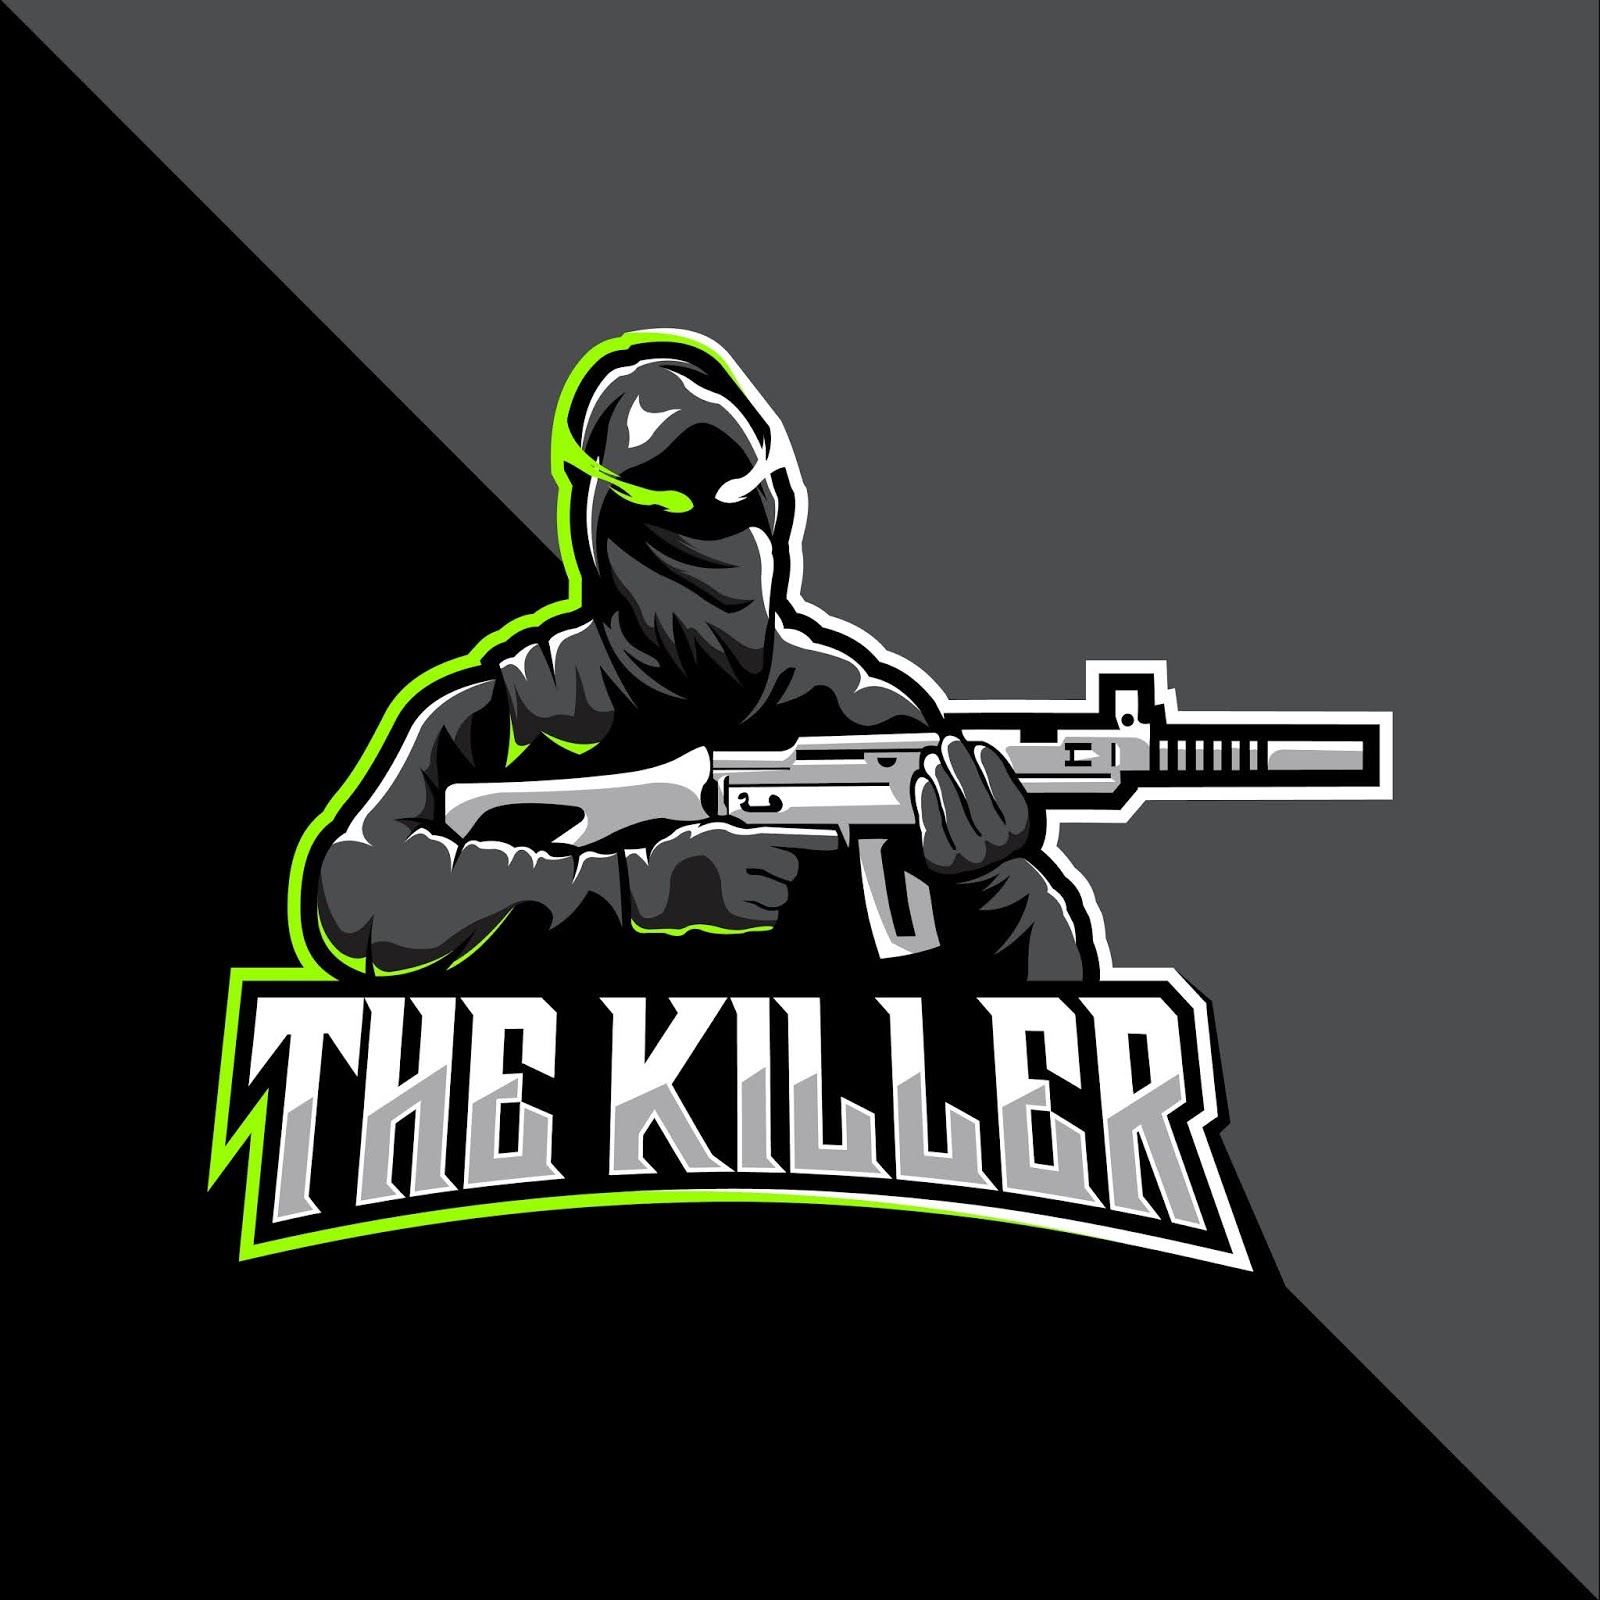 Killer Esport Logo Free Download Vector CDR, AI, EPS and PNG Formats